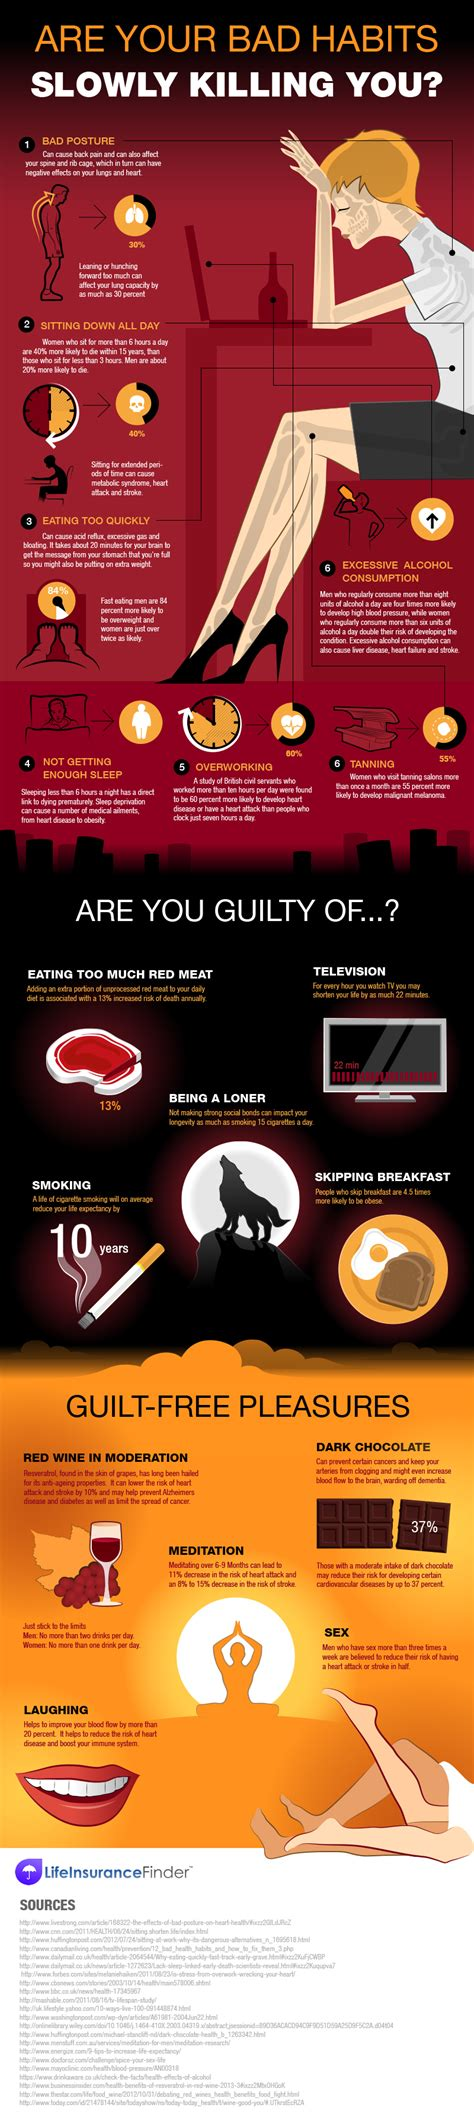 did you your bad habits are slowly killing you